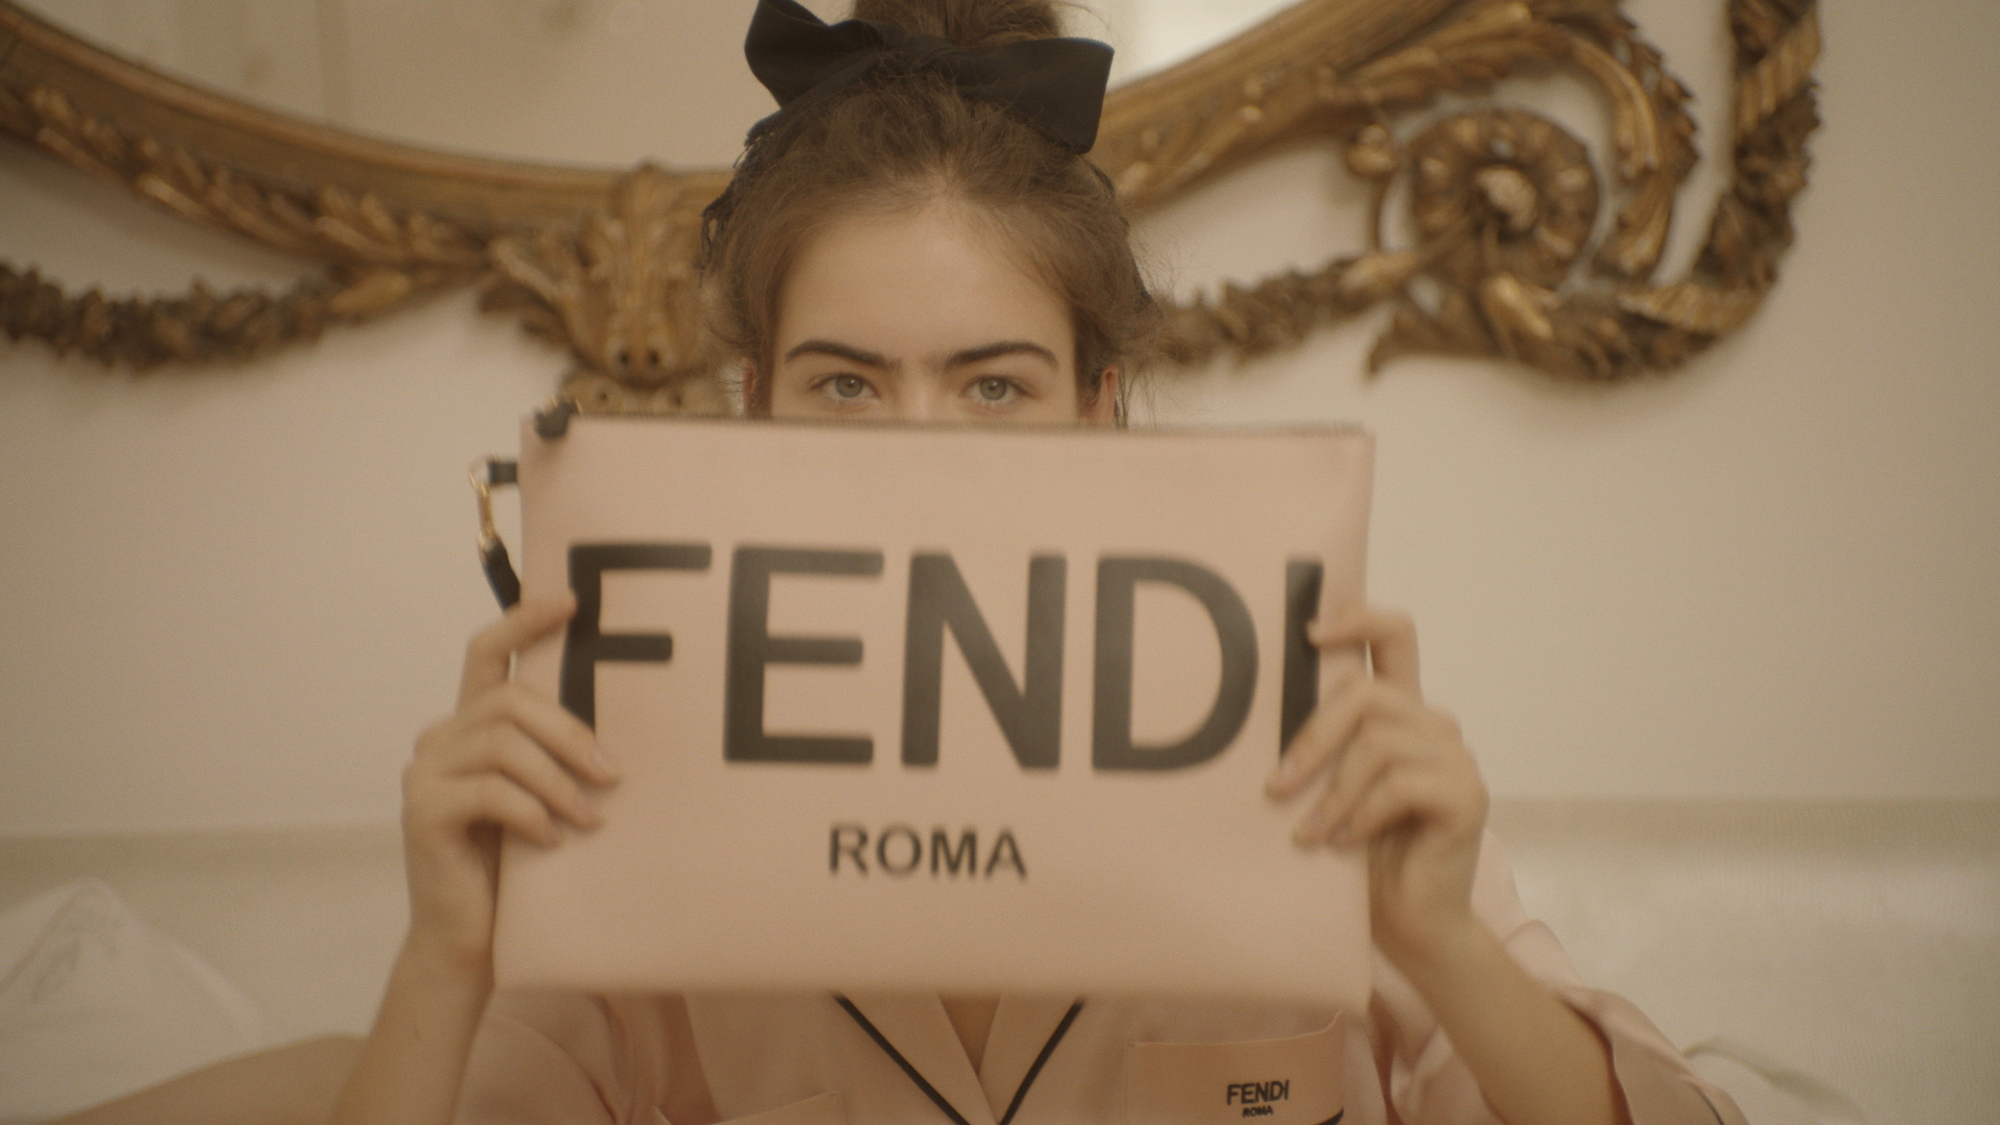 Fendi Roma Holiday purse